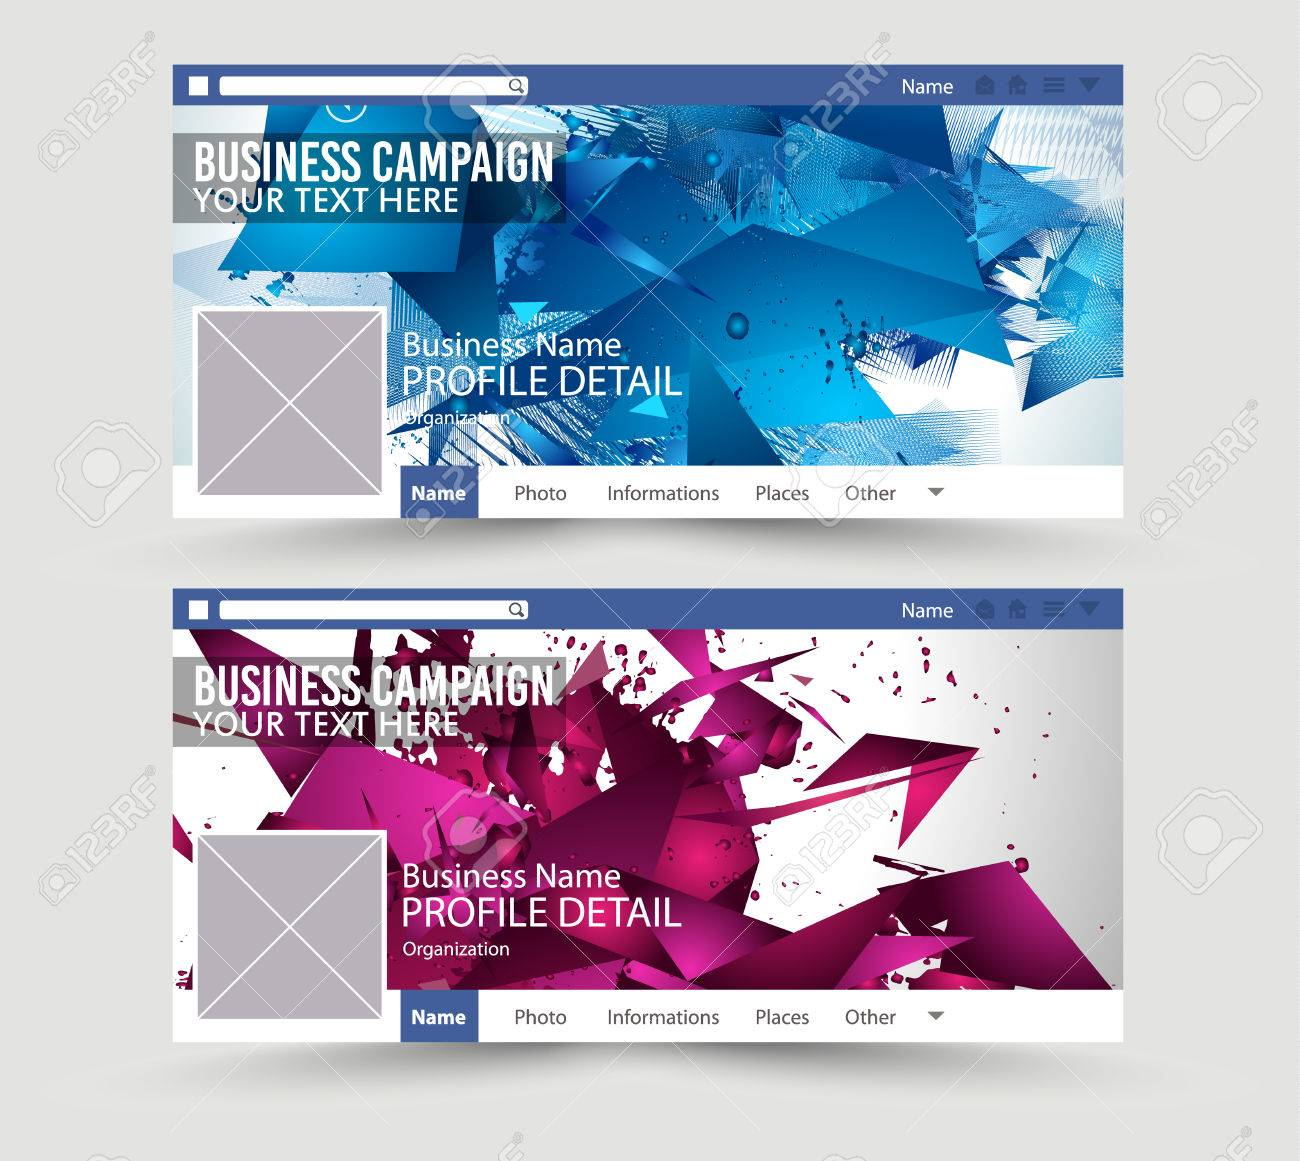 social media web banner website header for page template for